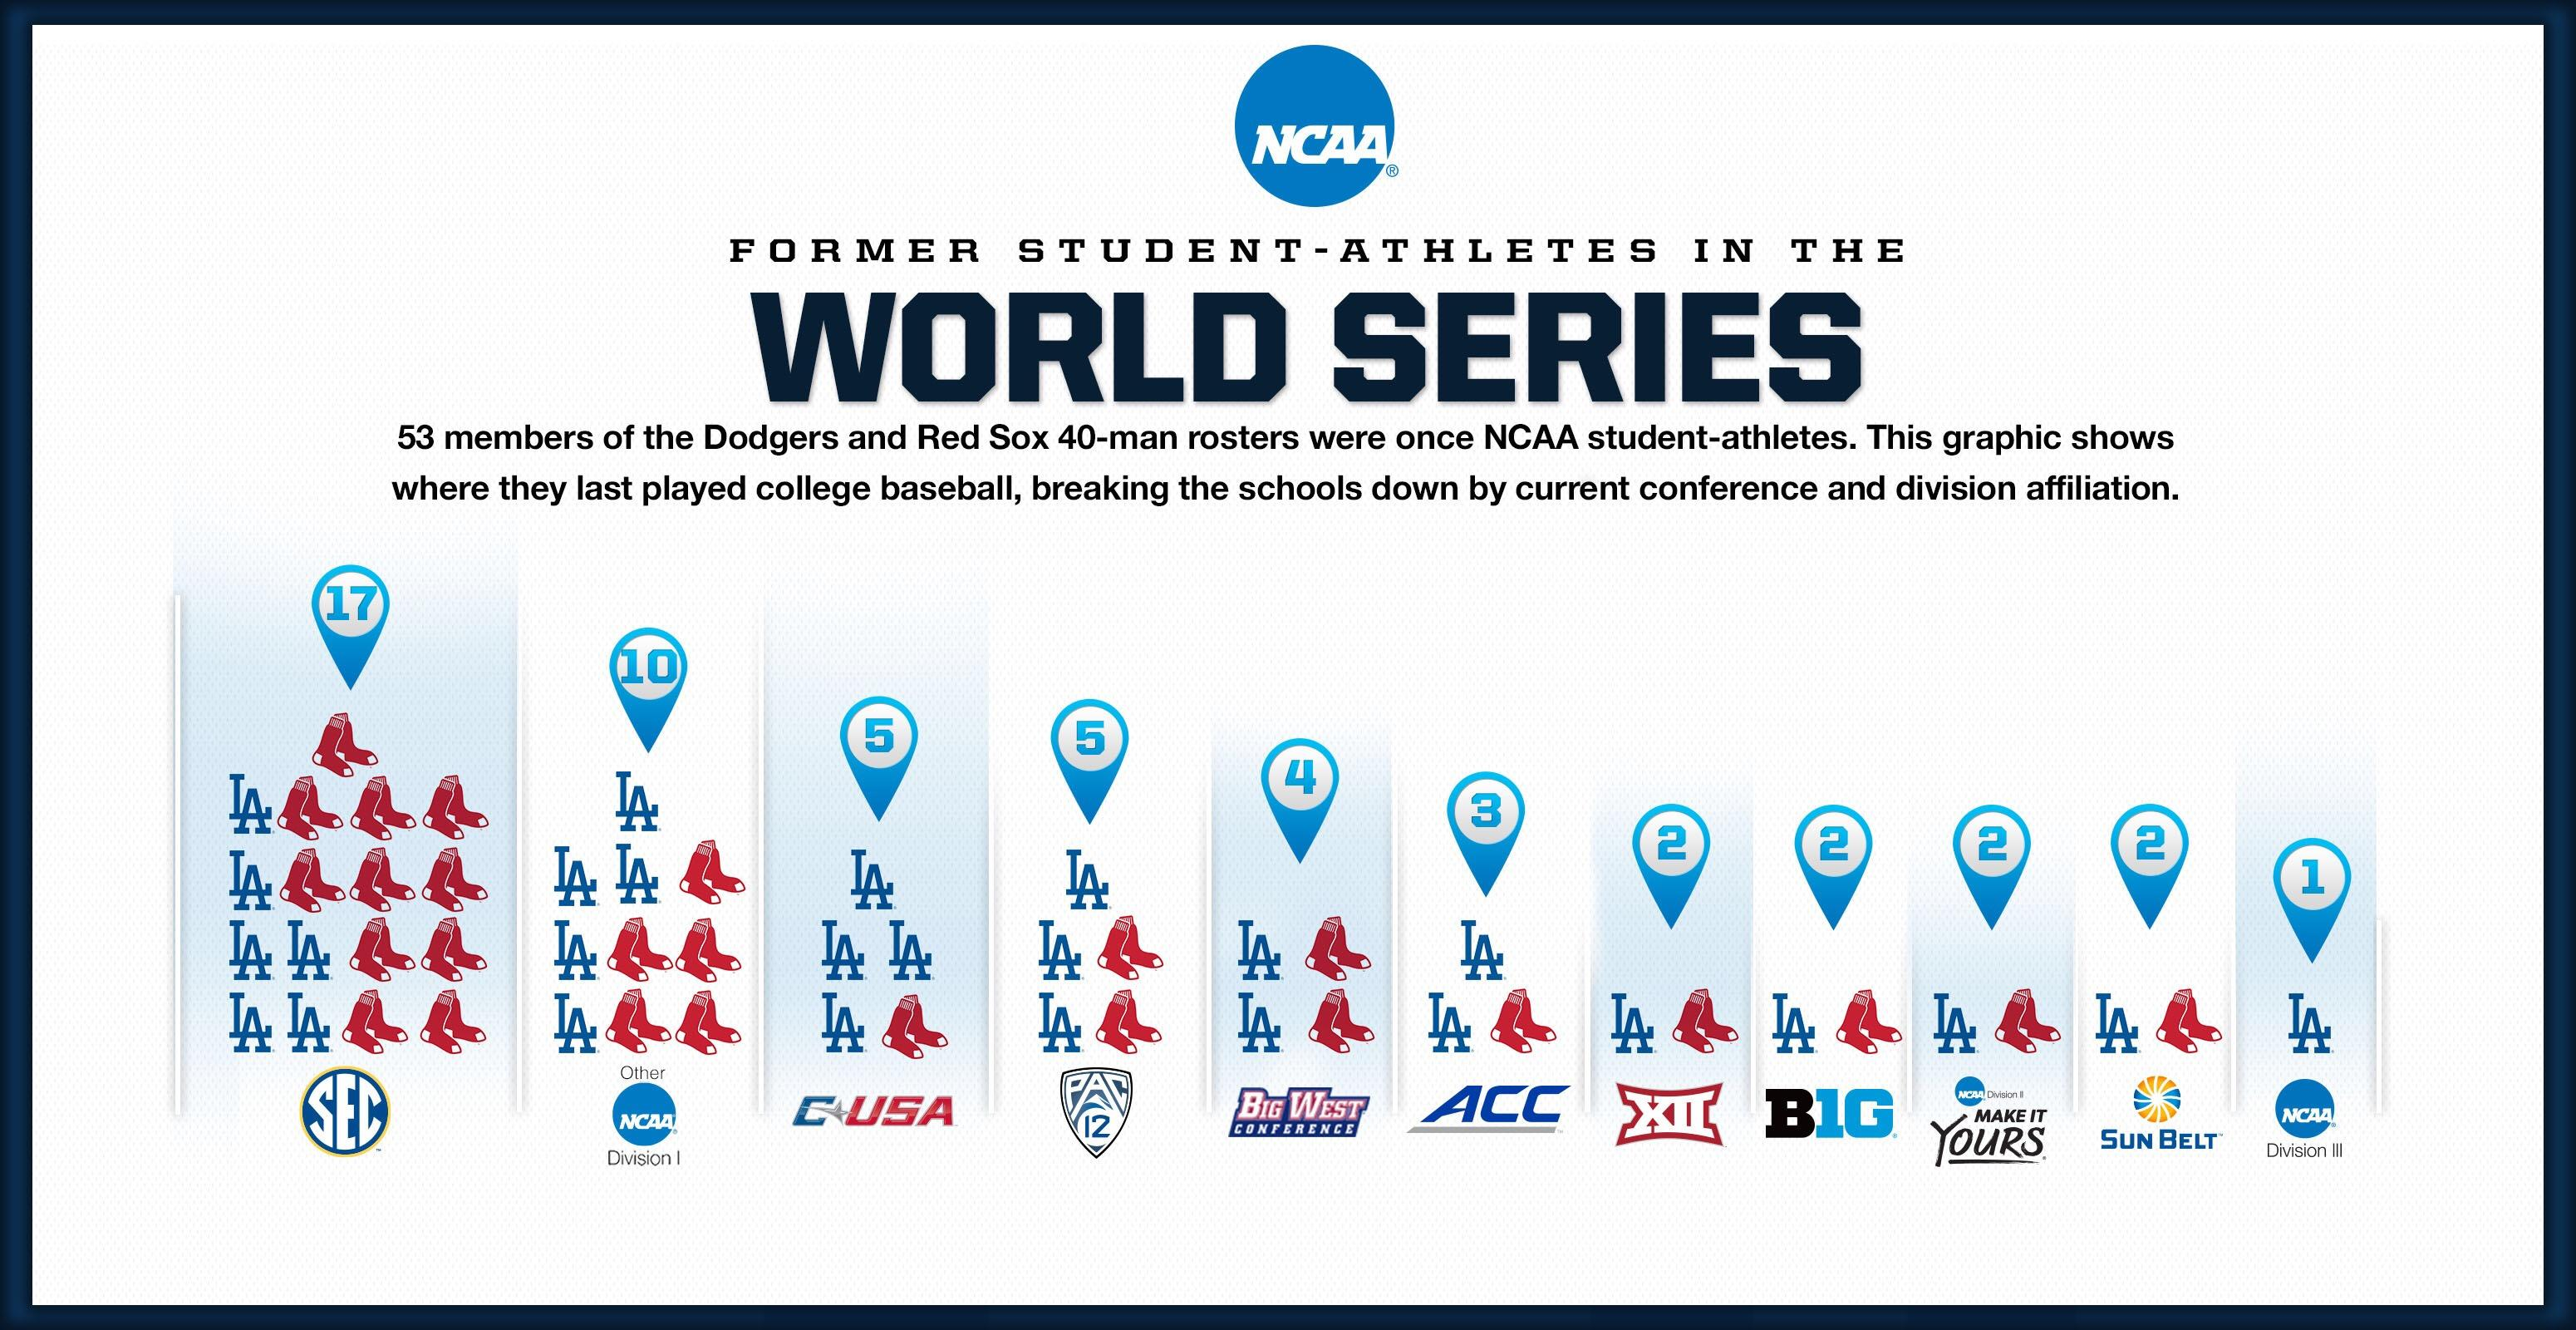 World Series 2018: Here's where the Dodgers and Red Sox